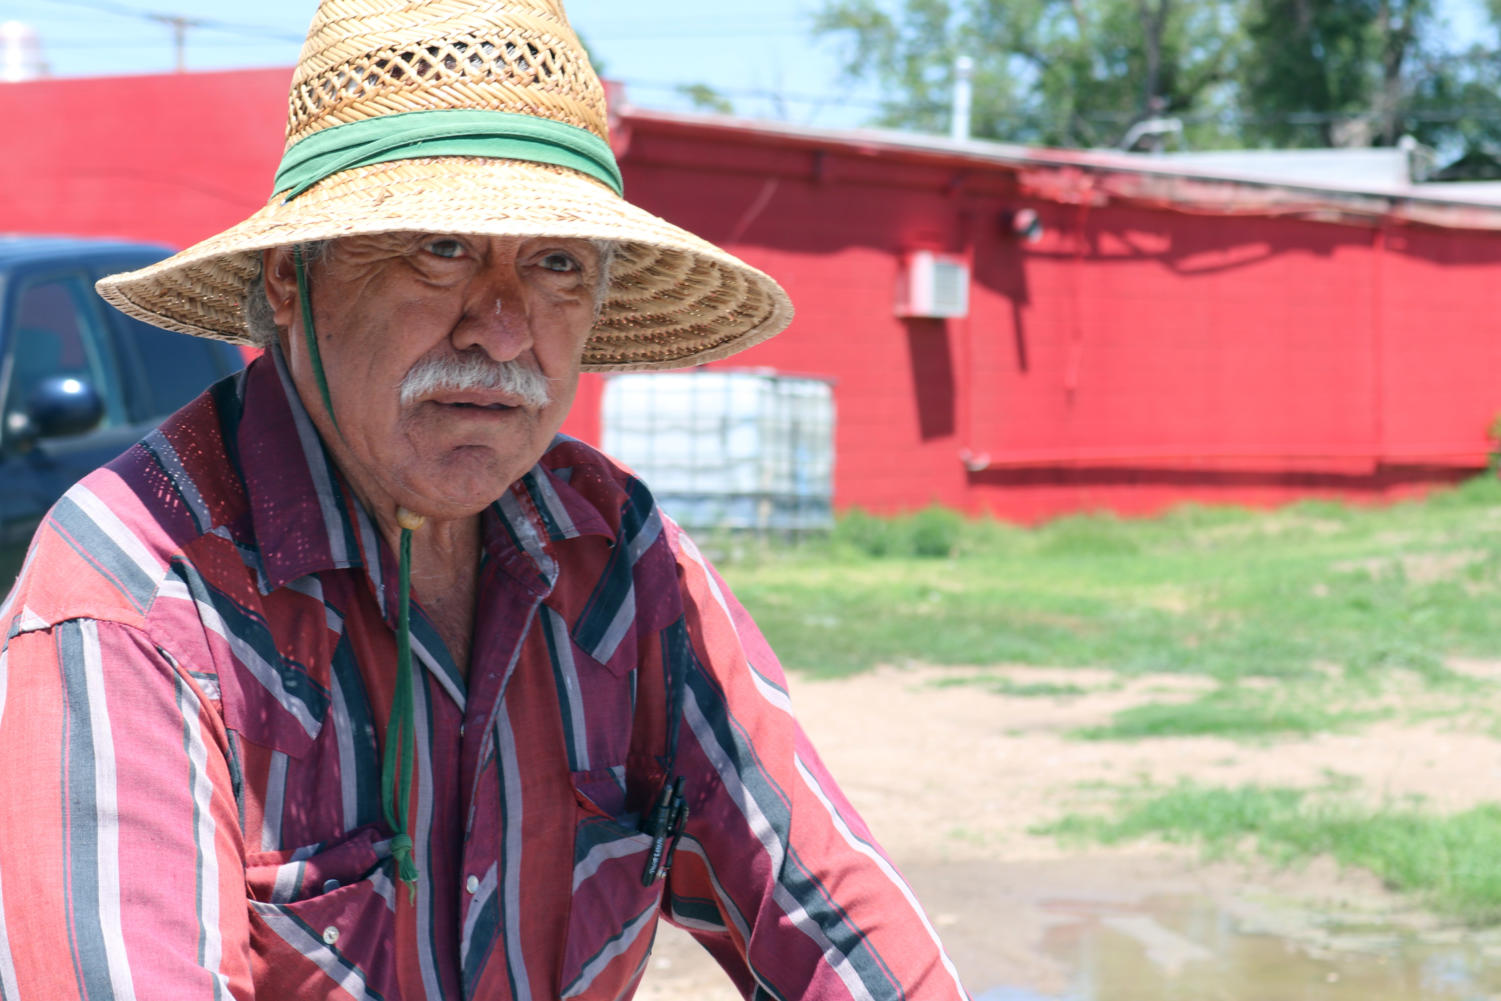 Francisco Solis spends the whole day in the heat, with only an occasional break, consisting of leaning up against the cart in the shade. Each paletero spends the whole work day on their feet.